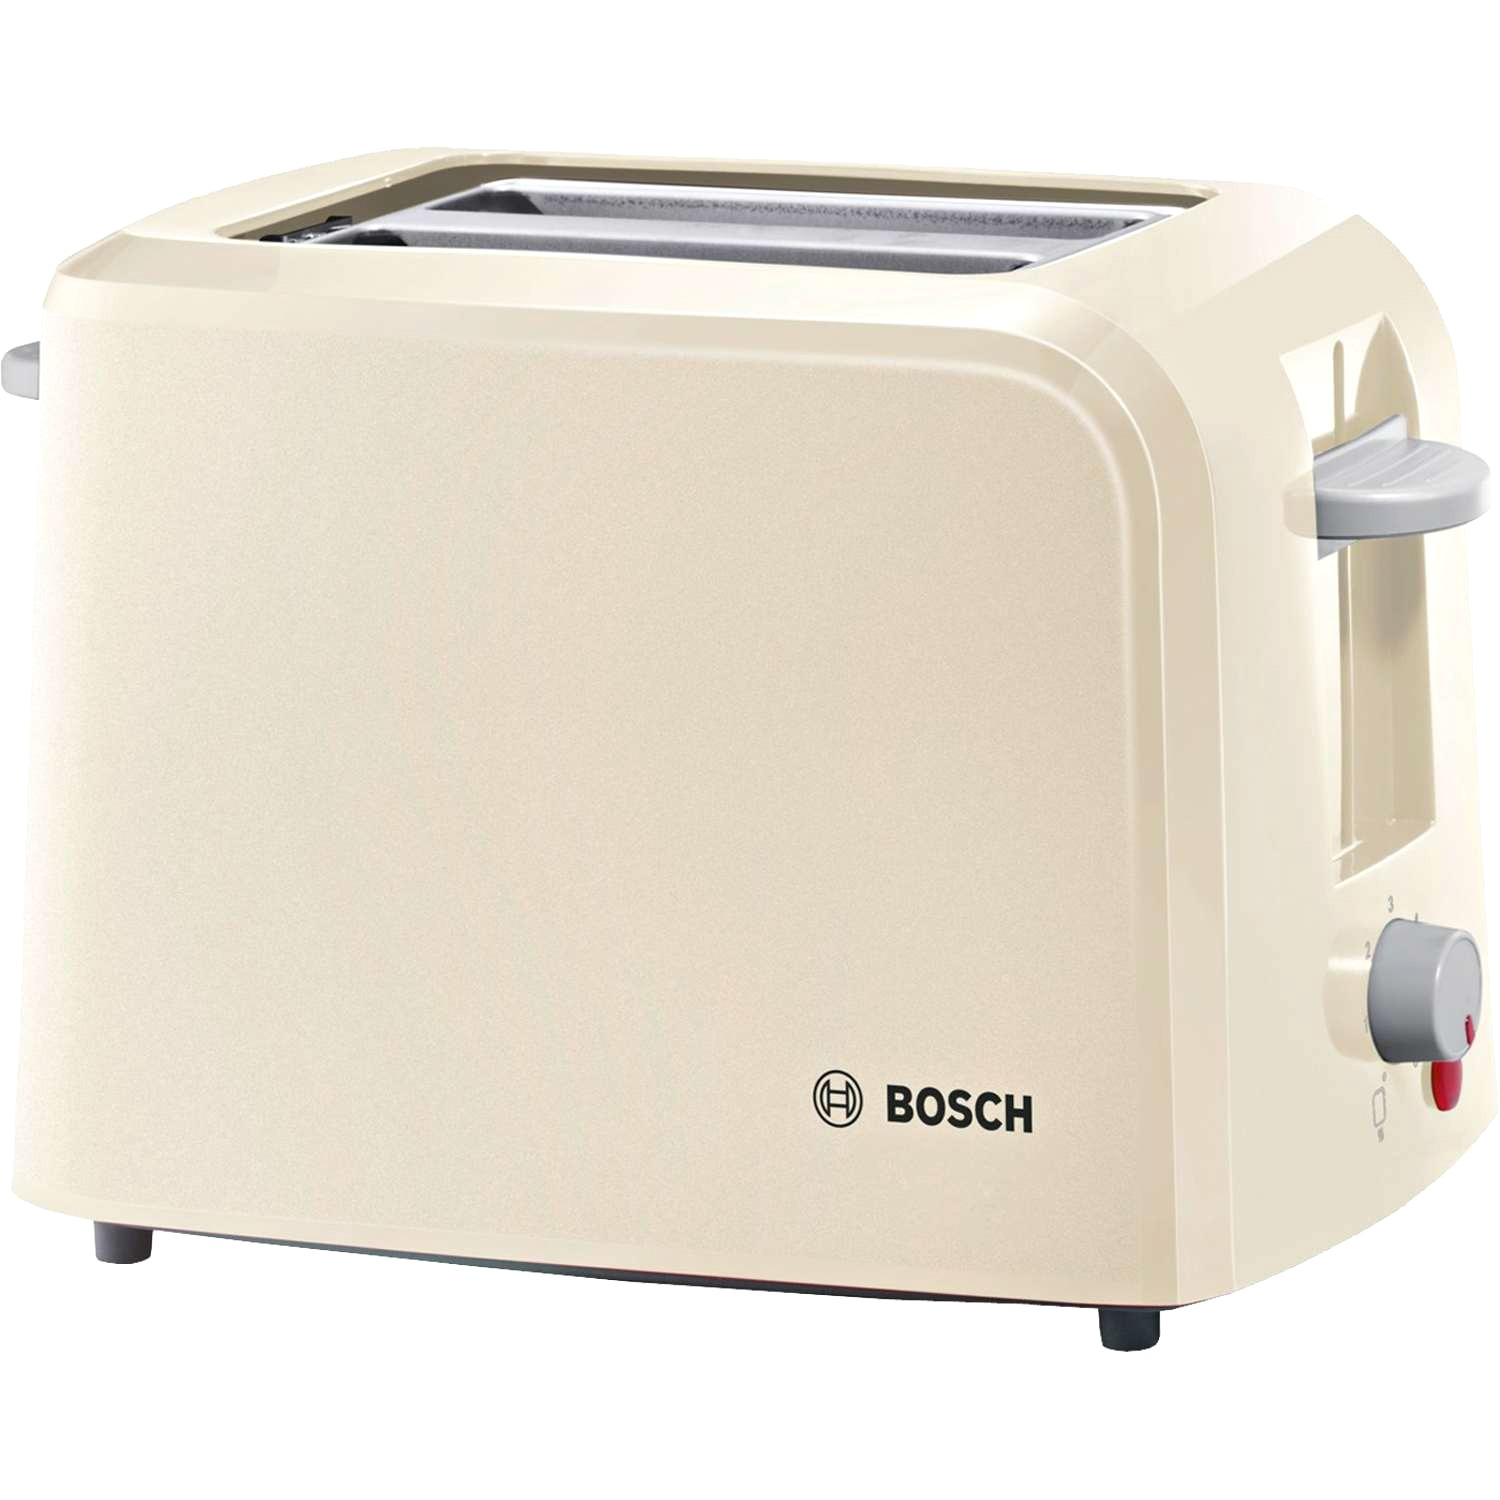 top toaster oven brands popular toaster brands my thought best toaster reviews which is. Black Bedroom Furniture Sets. Home Design Ideas